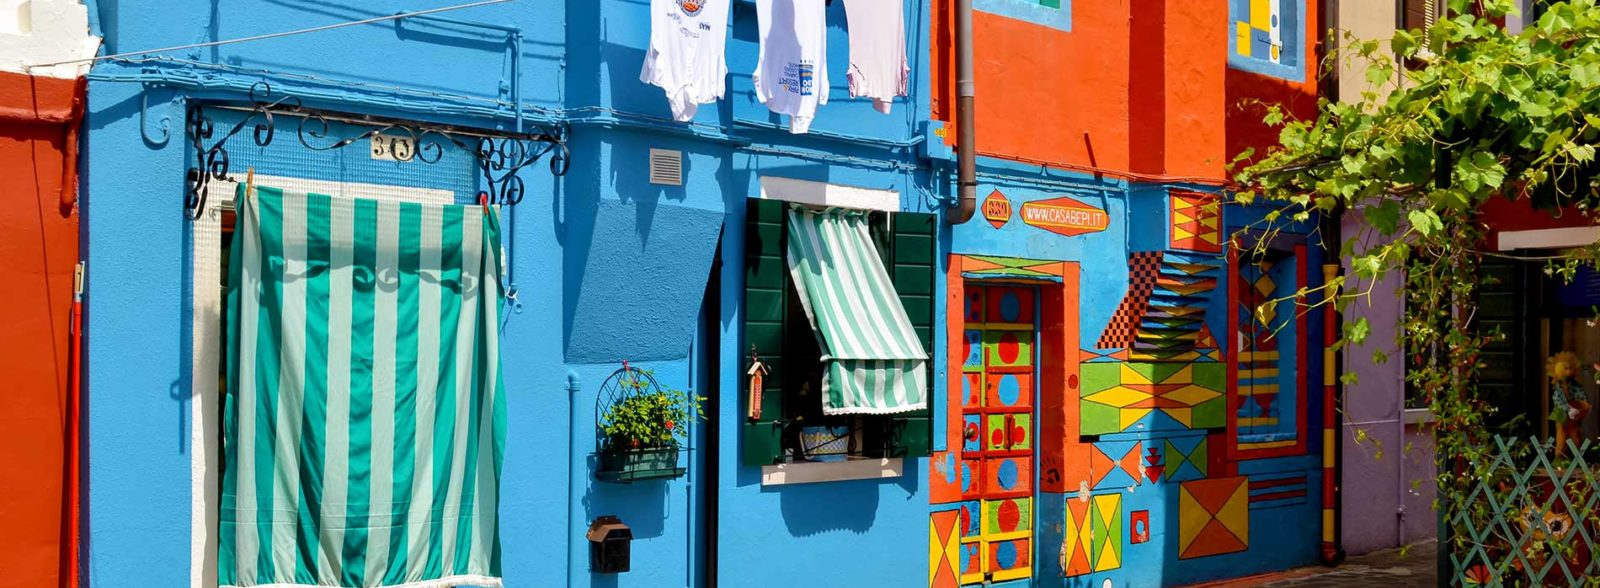 Island of Burano: how to get there and what to see